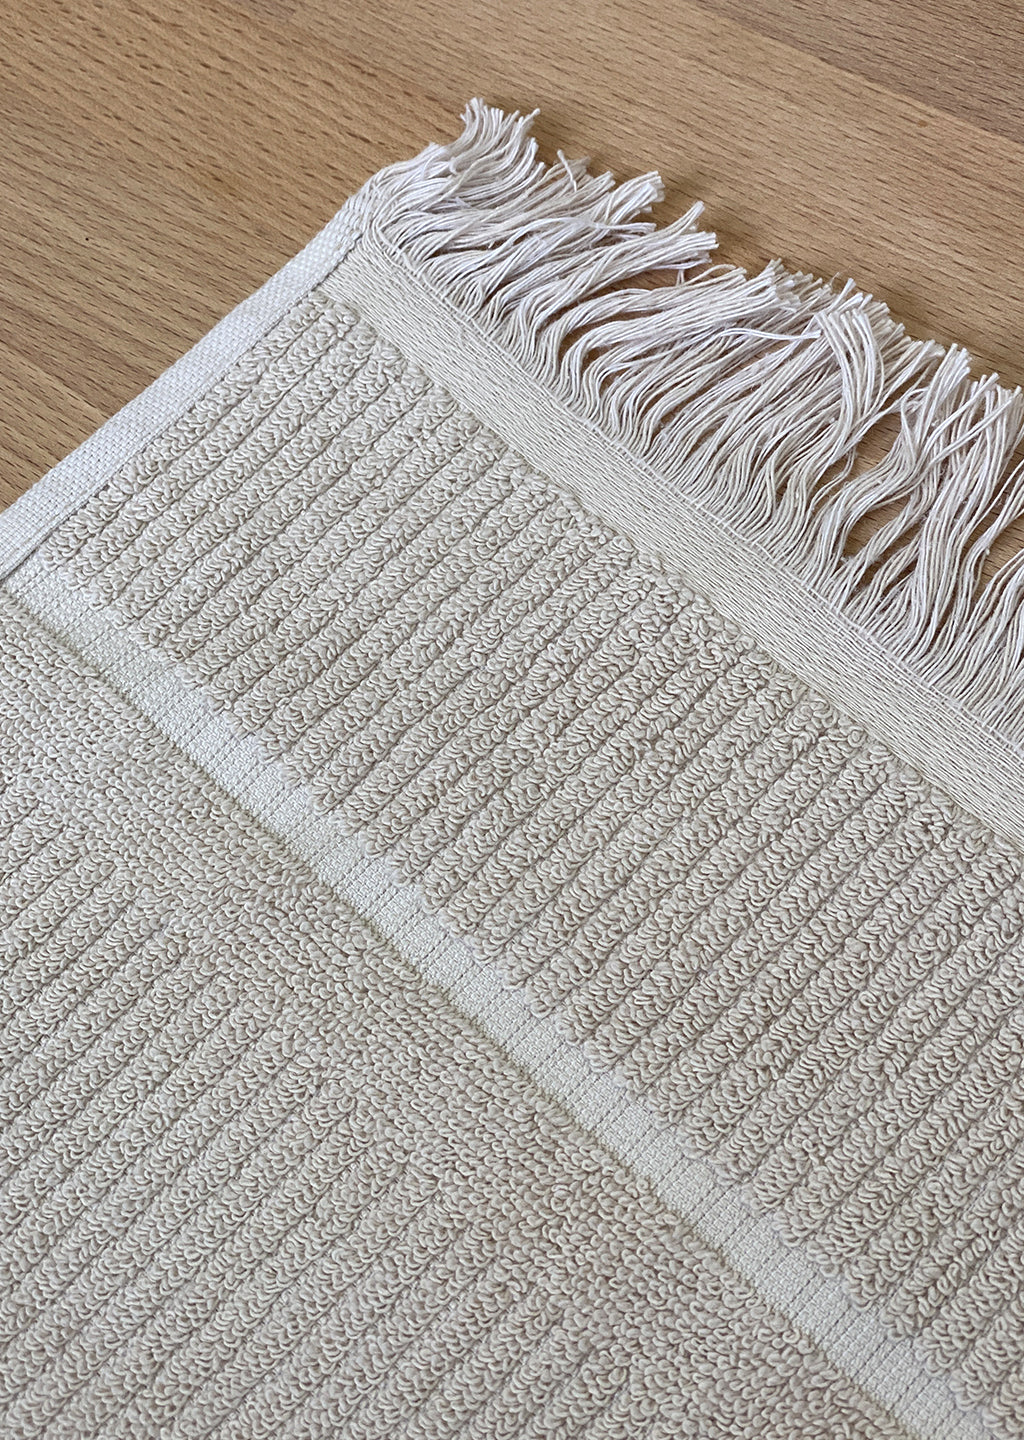 Luxe Bath Mat - Sand (Seconds)